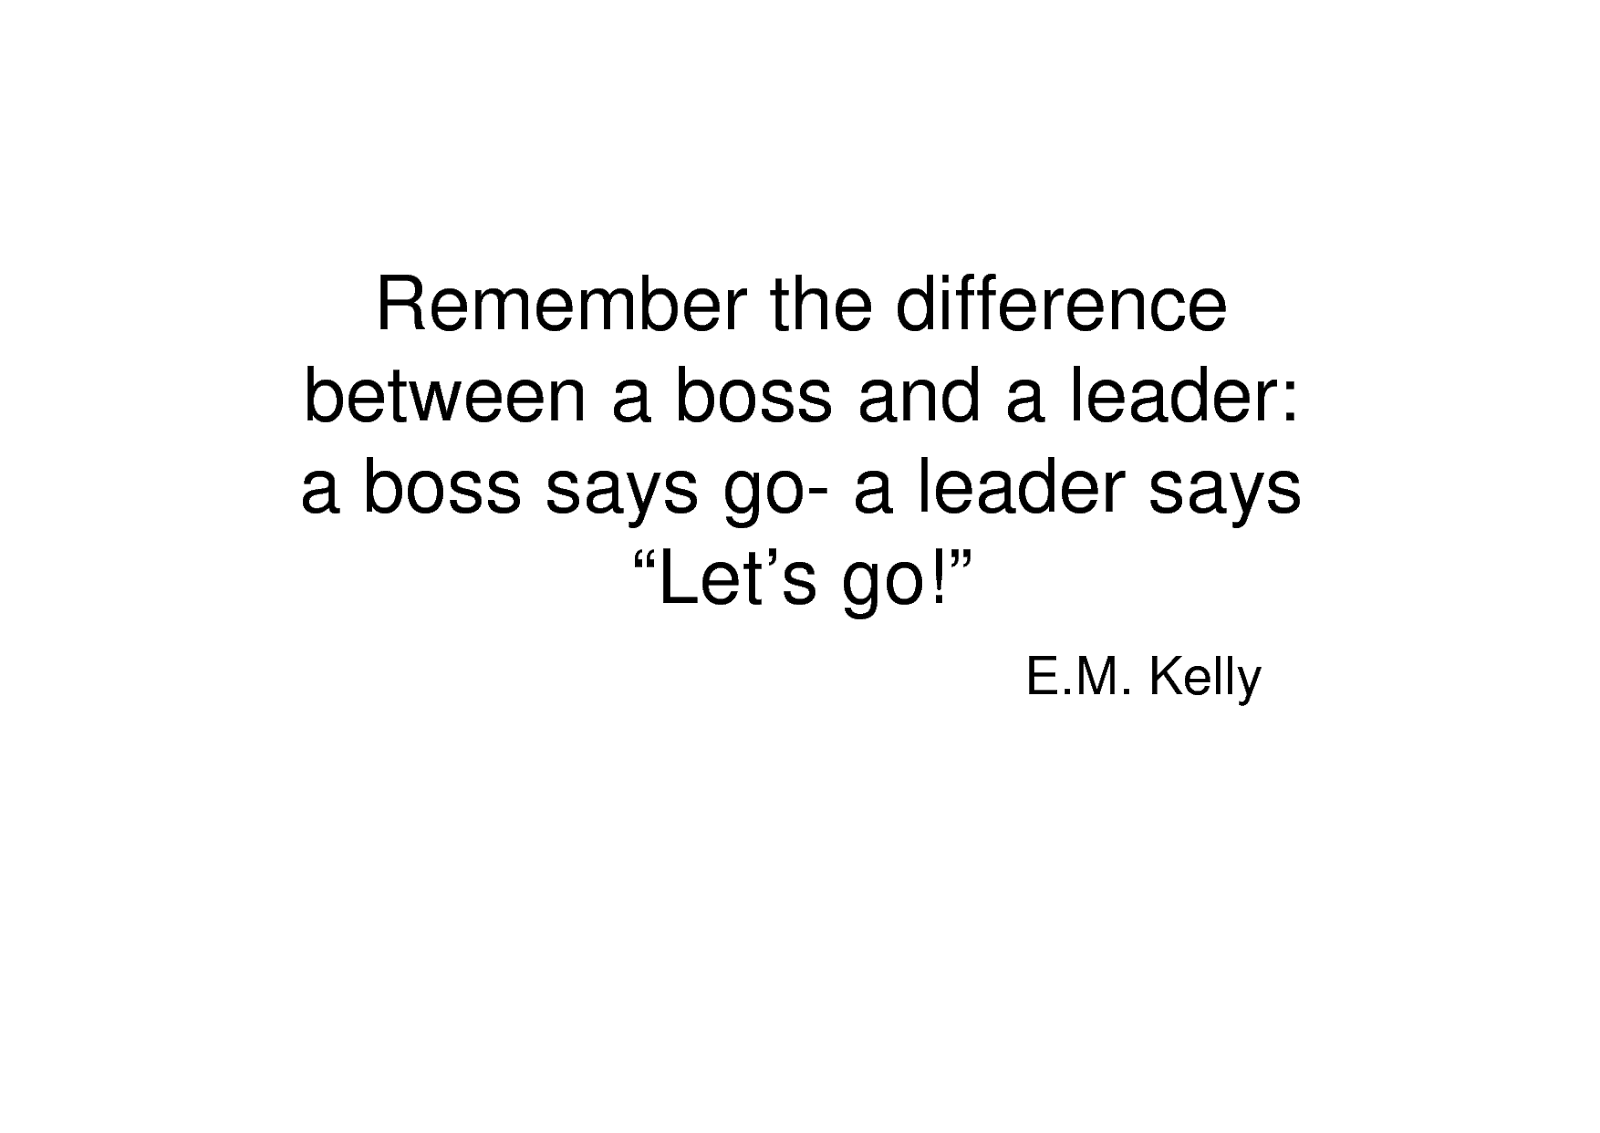 Remember the difference between a boss and a leader; a boss says 'Go!' – a leader says 'Let's go! - E.M. Kelly